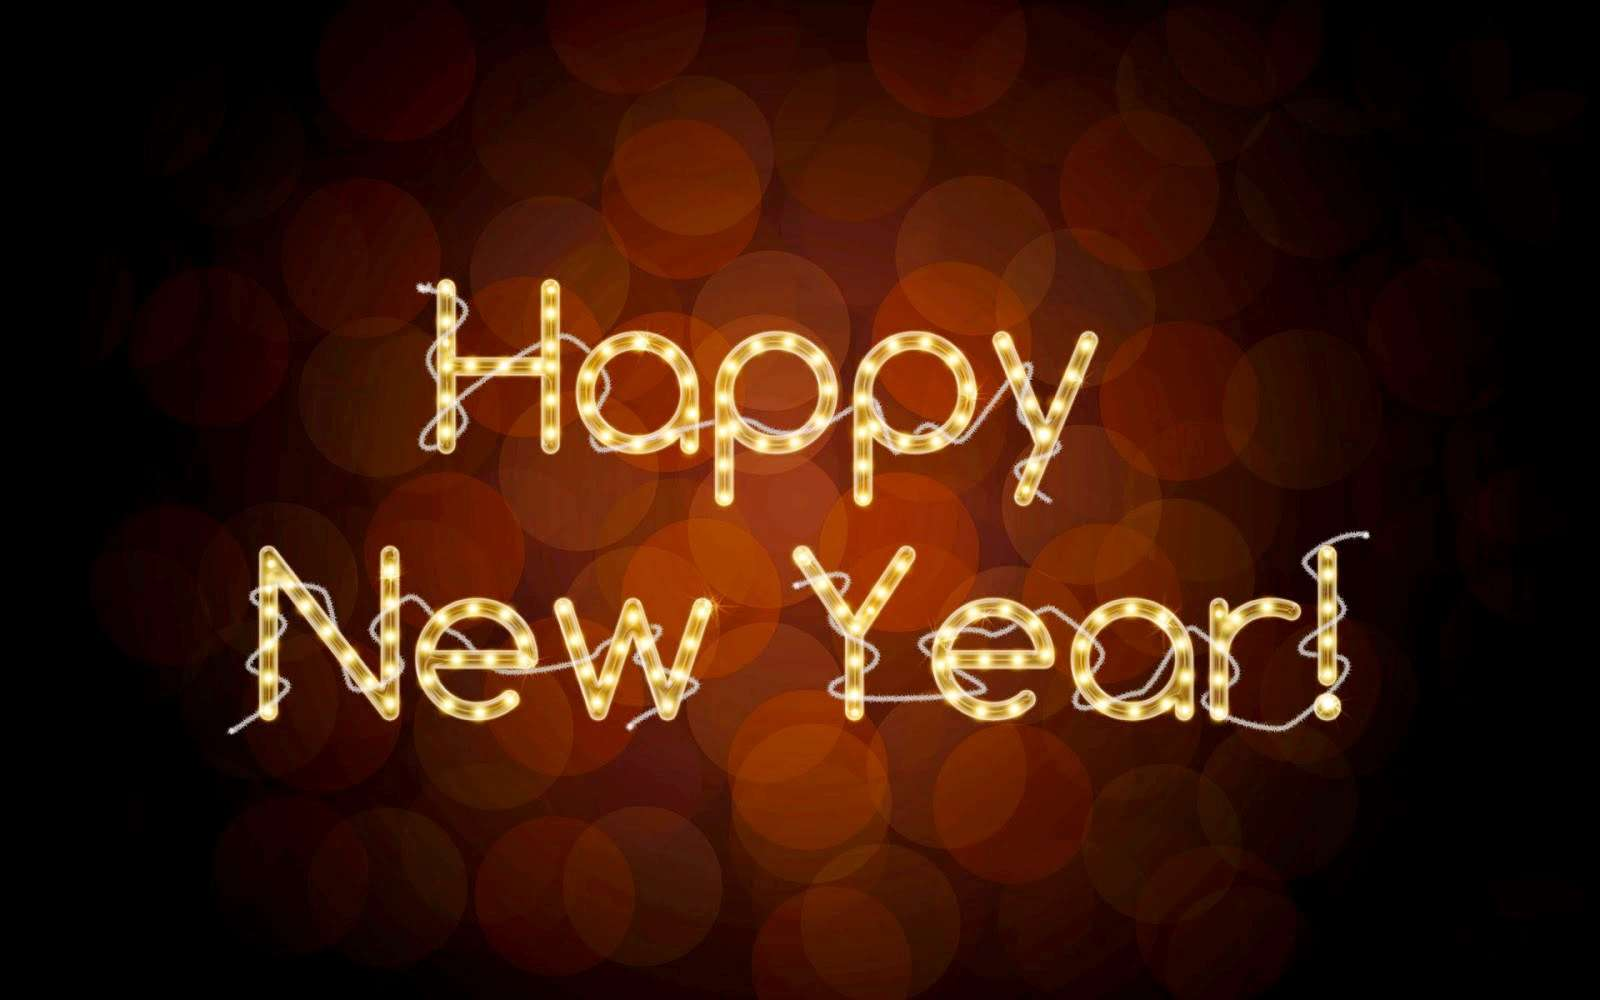 2015 new year hd wallpaper free new year images hd download